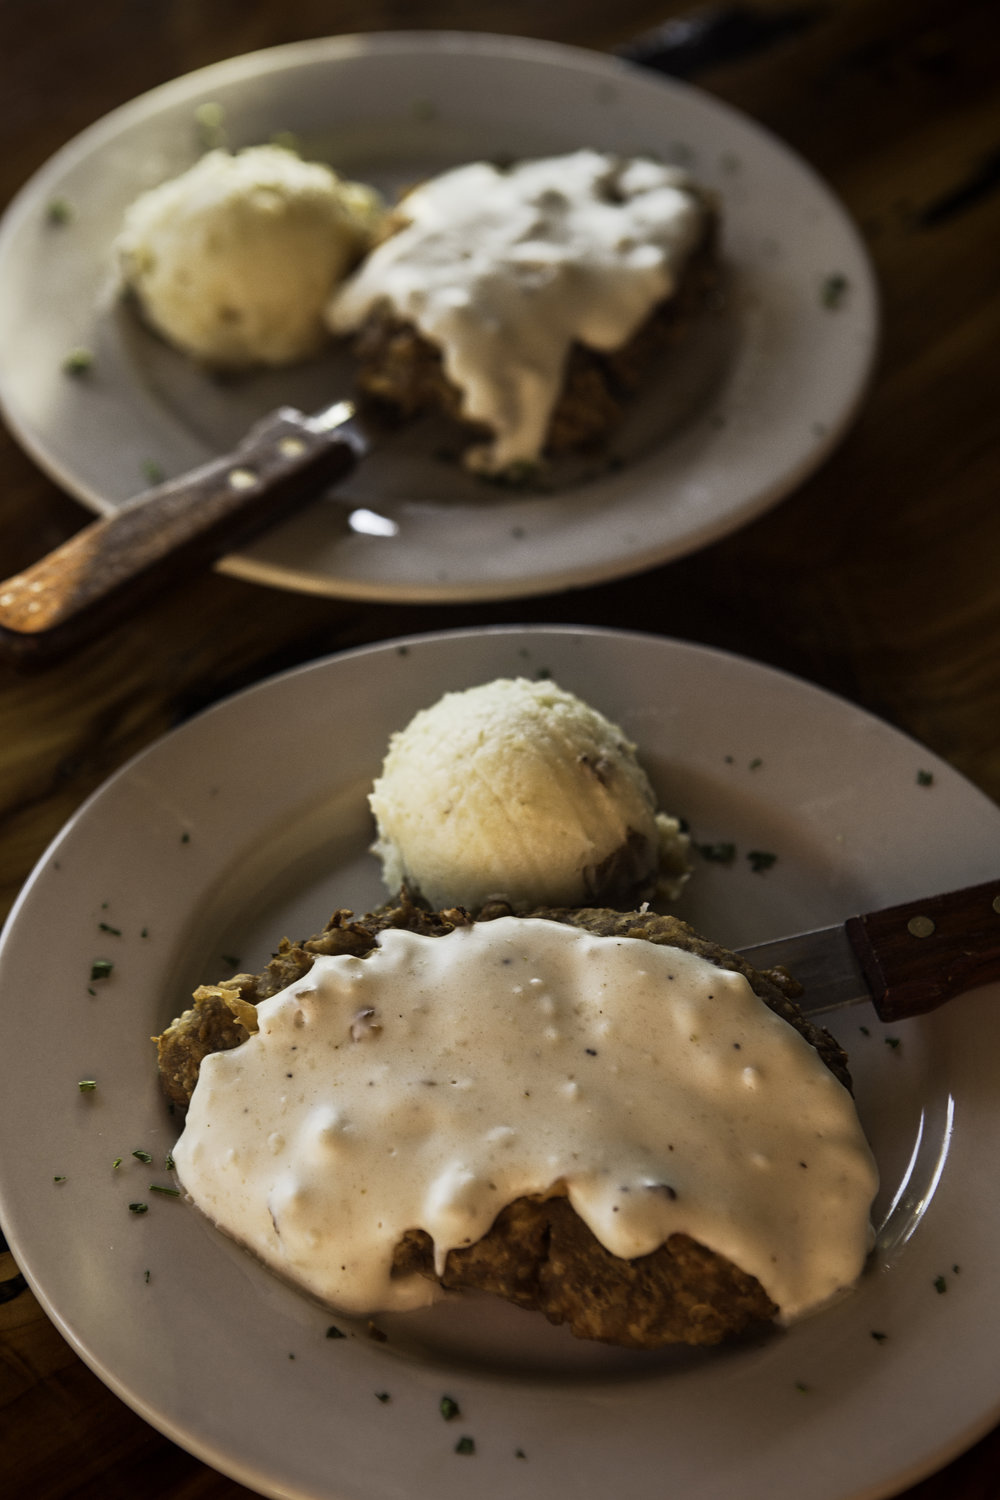 The chicken fried steak and the veggie chicken fried steak.